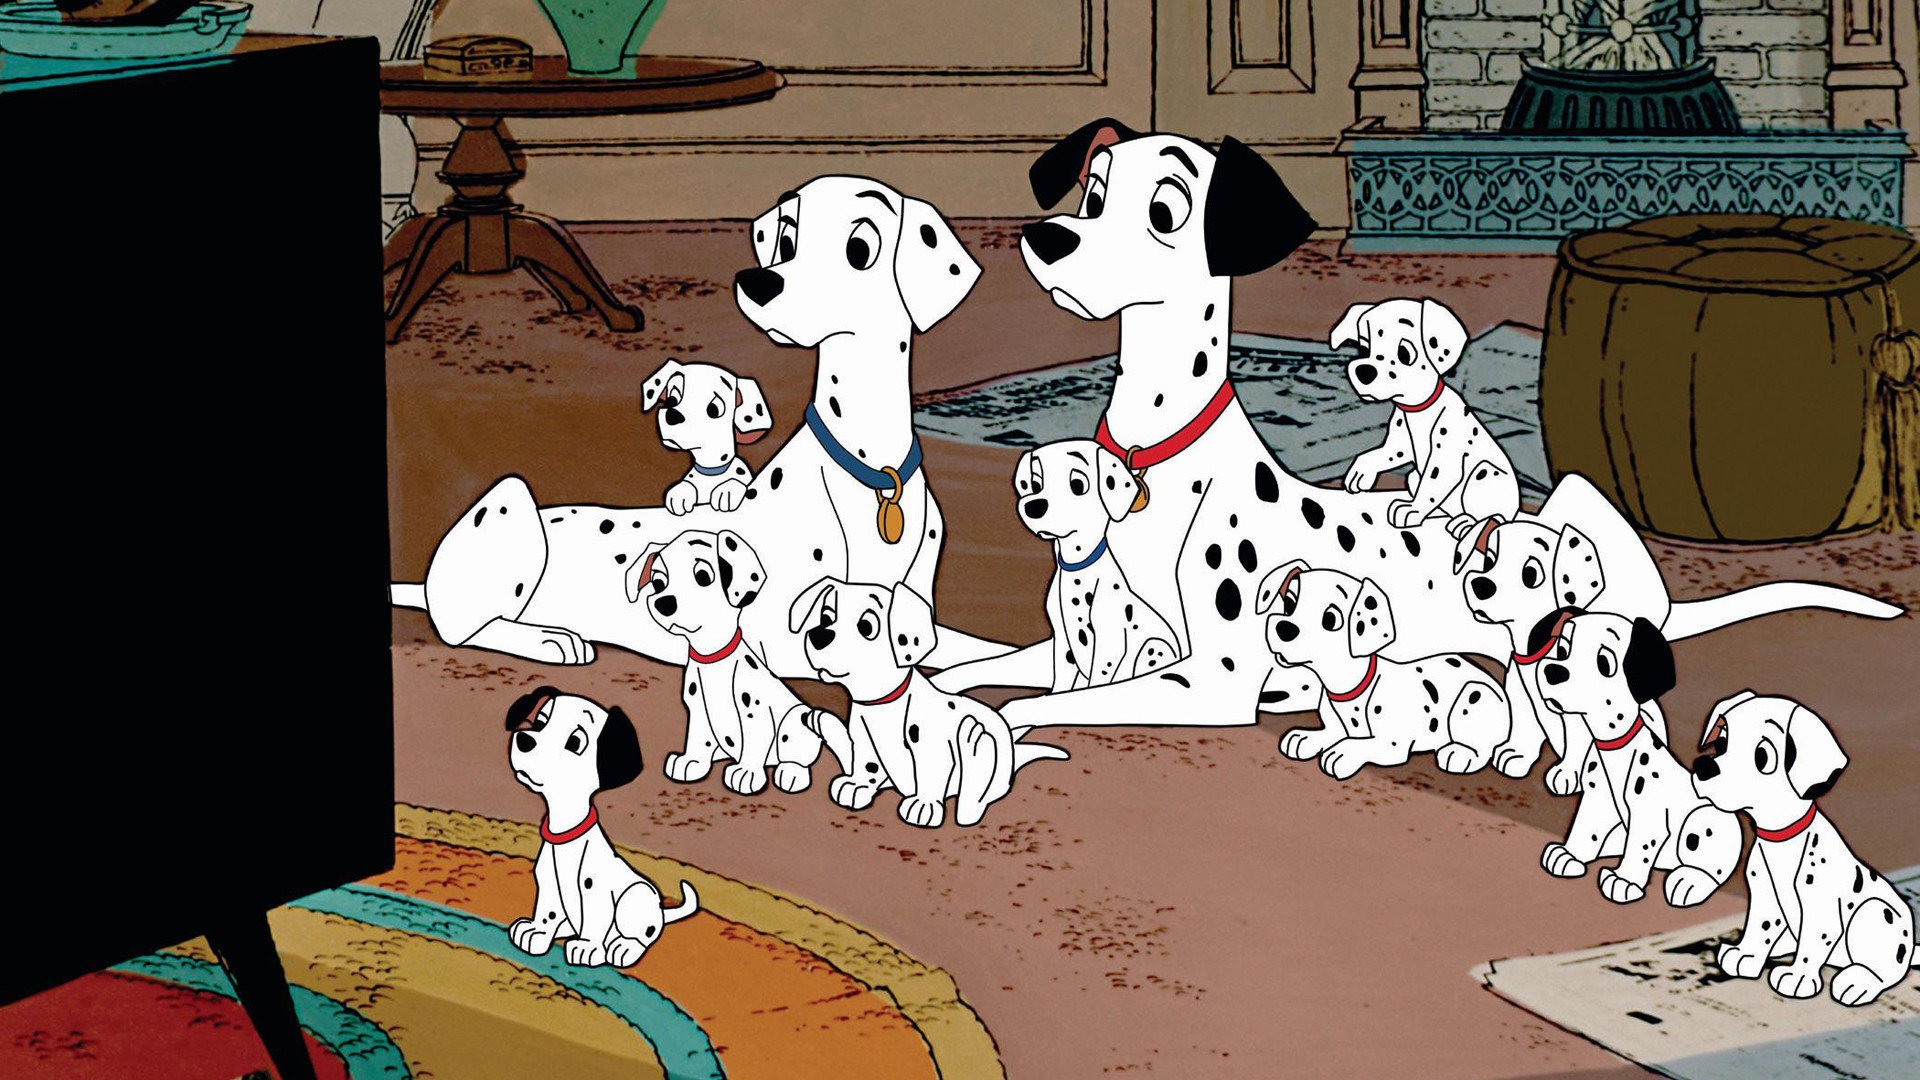 This is basically '101 Dalmations' in IRL